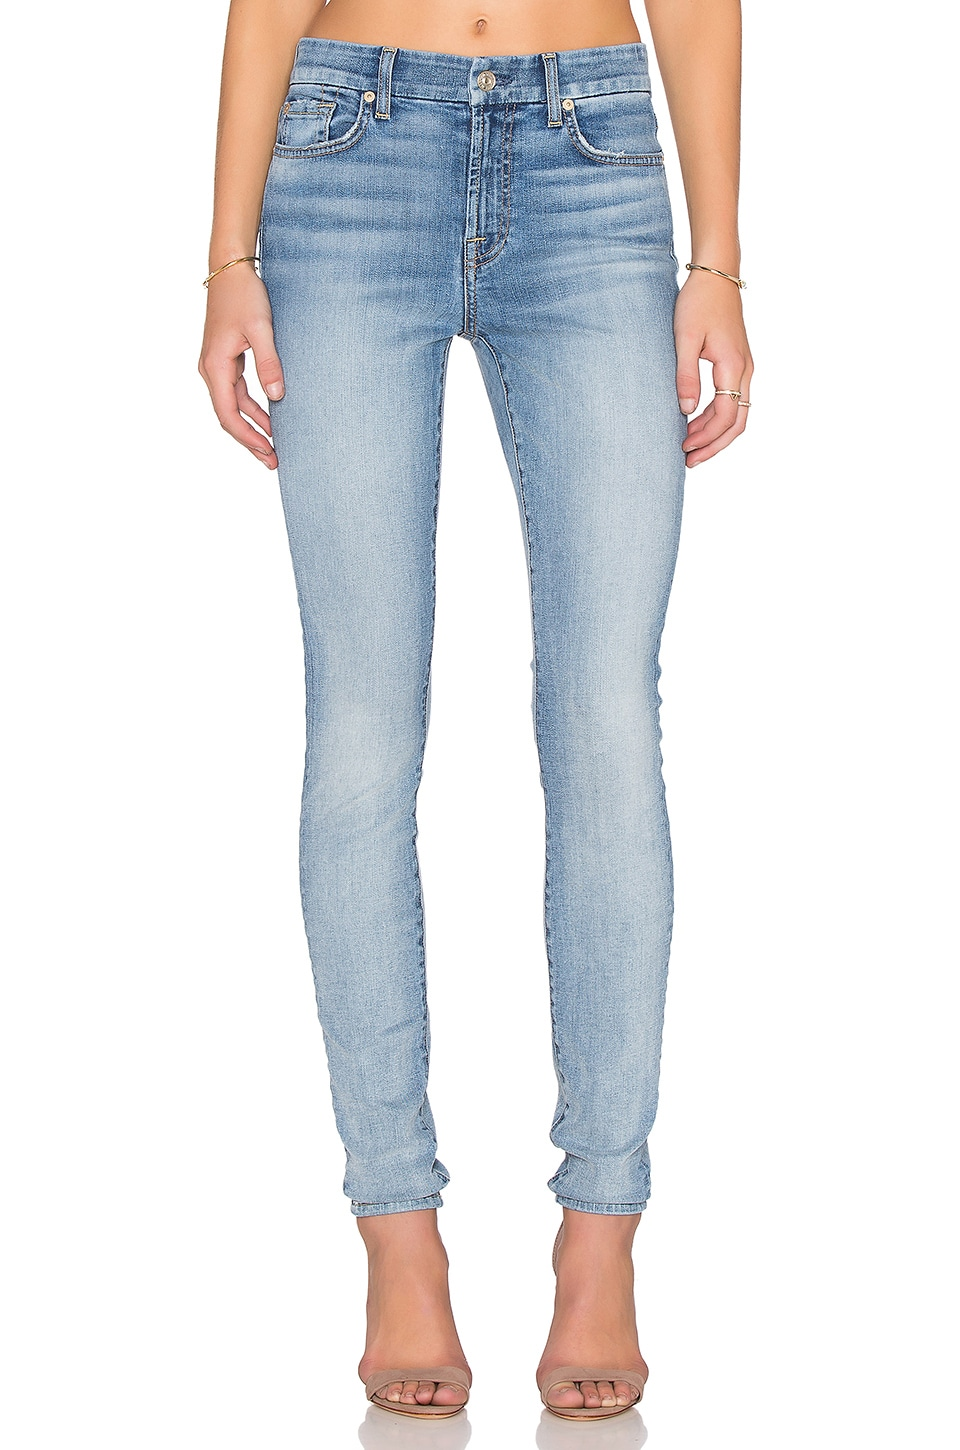 7 For All Mankind Mid Rise Skinny in Pretty Light Vintage